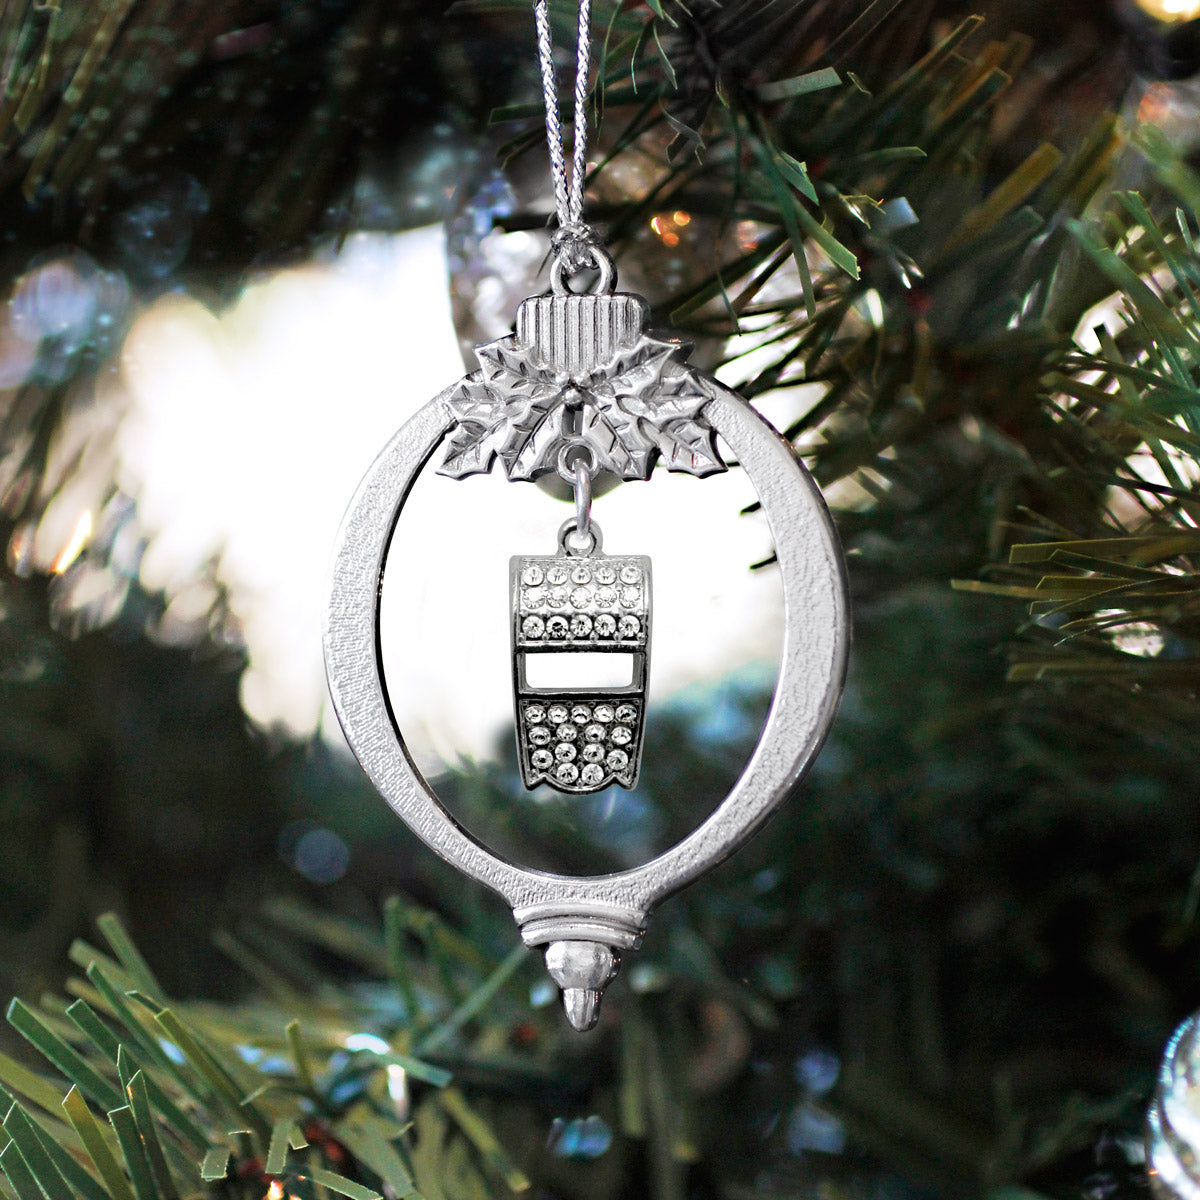 3.0 Carat Whistle Charm Christmas / Holiday Ornament